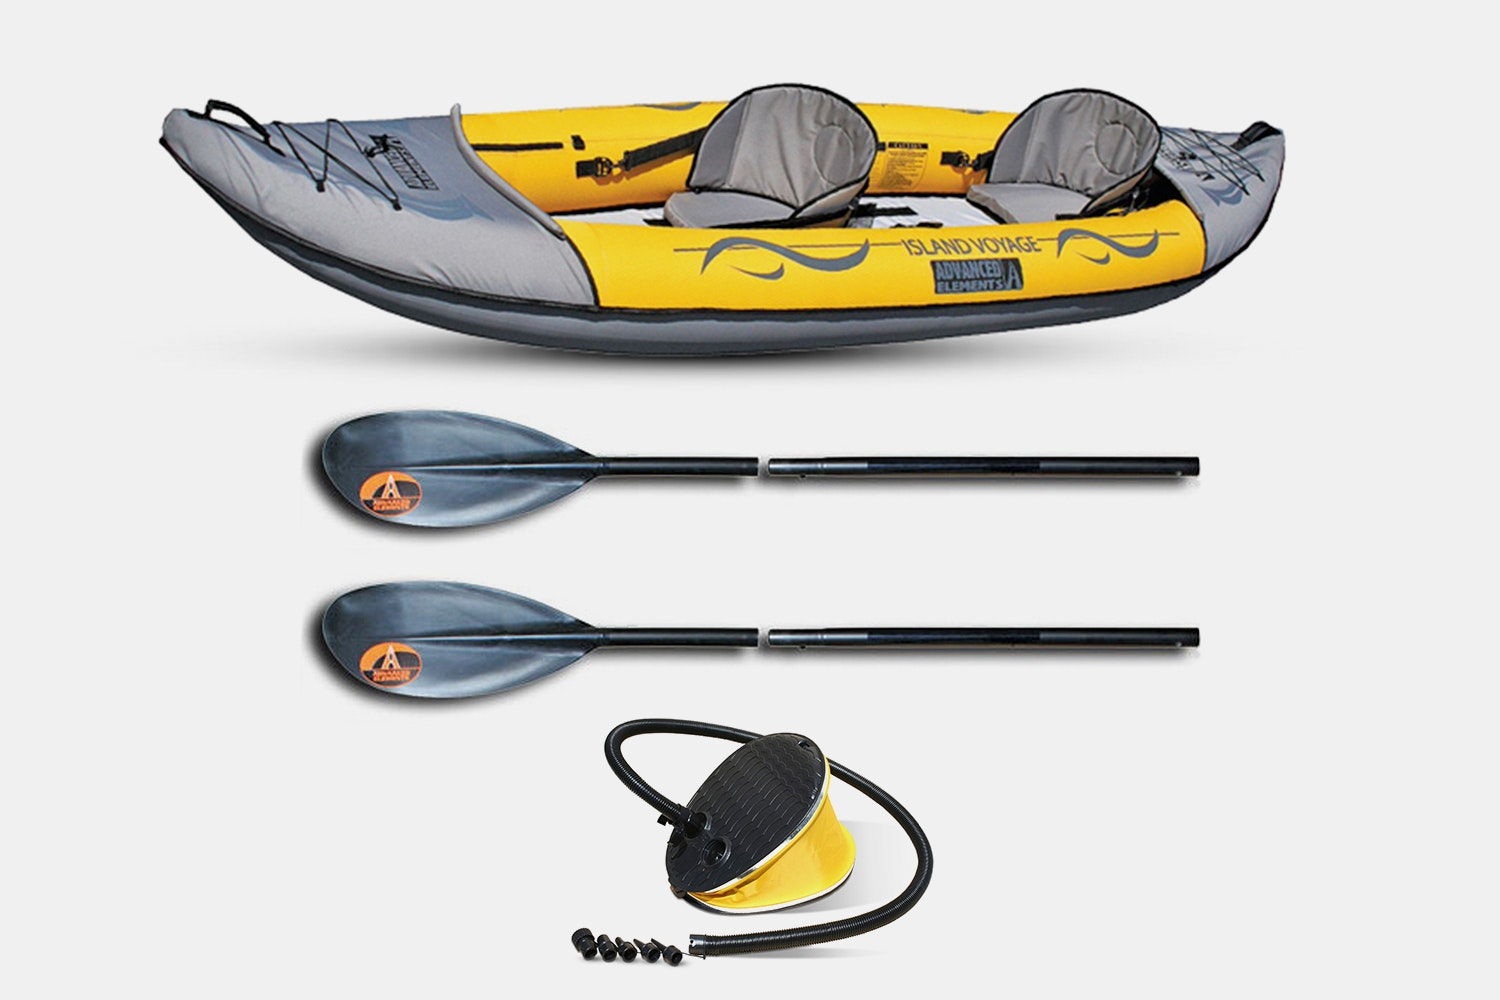 Island Voyage 2 Kayak + Foot Pump + 2 Paddle (+$120)